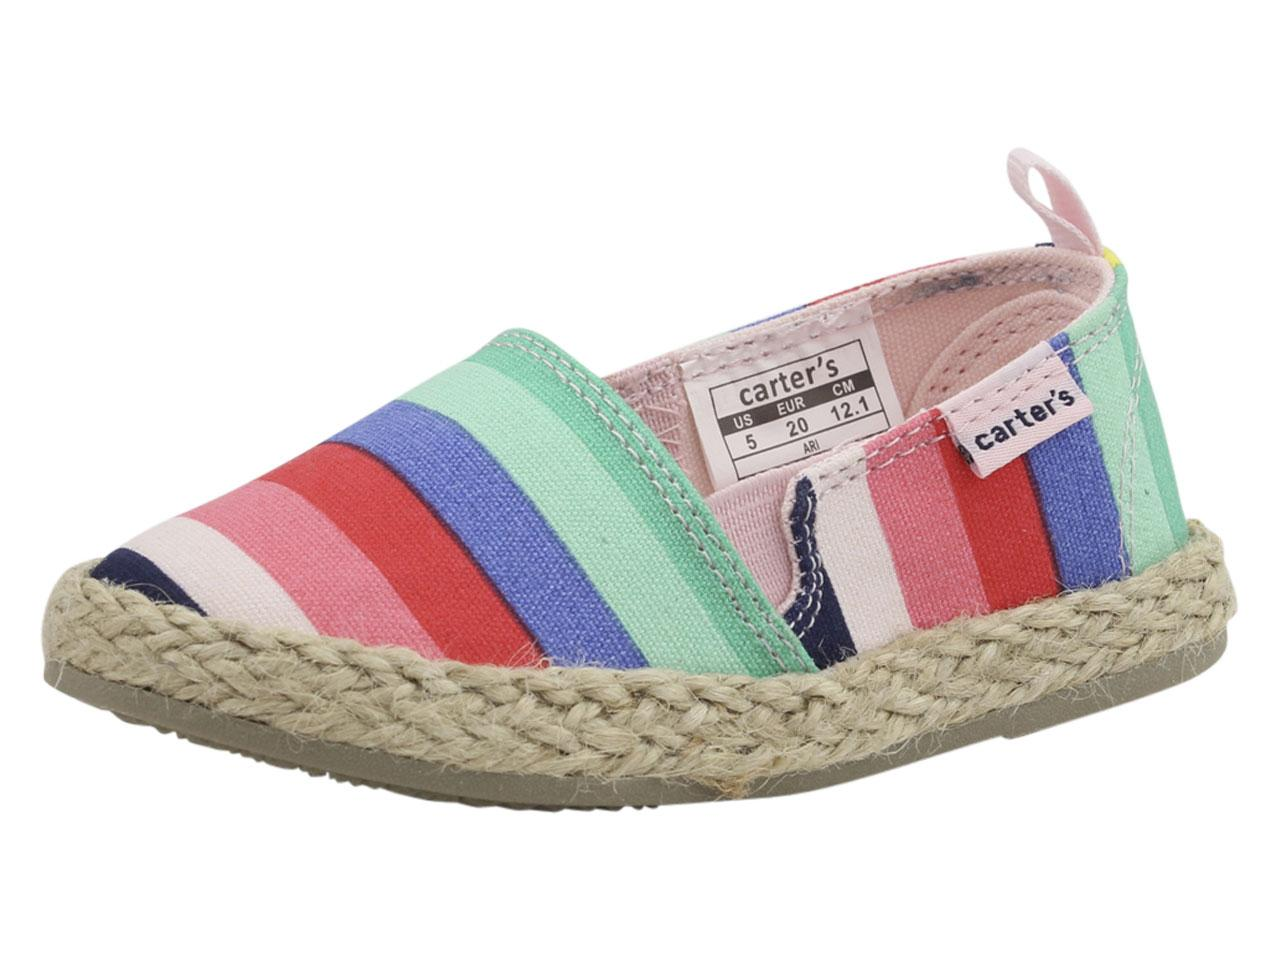 5f07cfc32d4 Carter s Toddler Little Girl s Ari Espadrilles Loafers Shoes